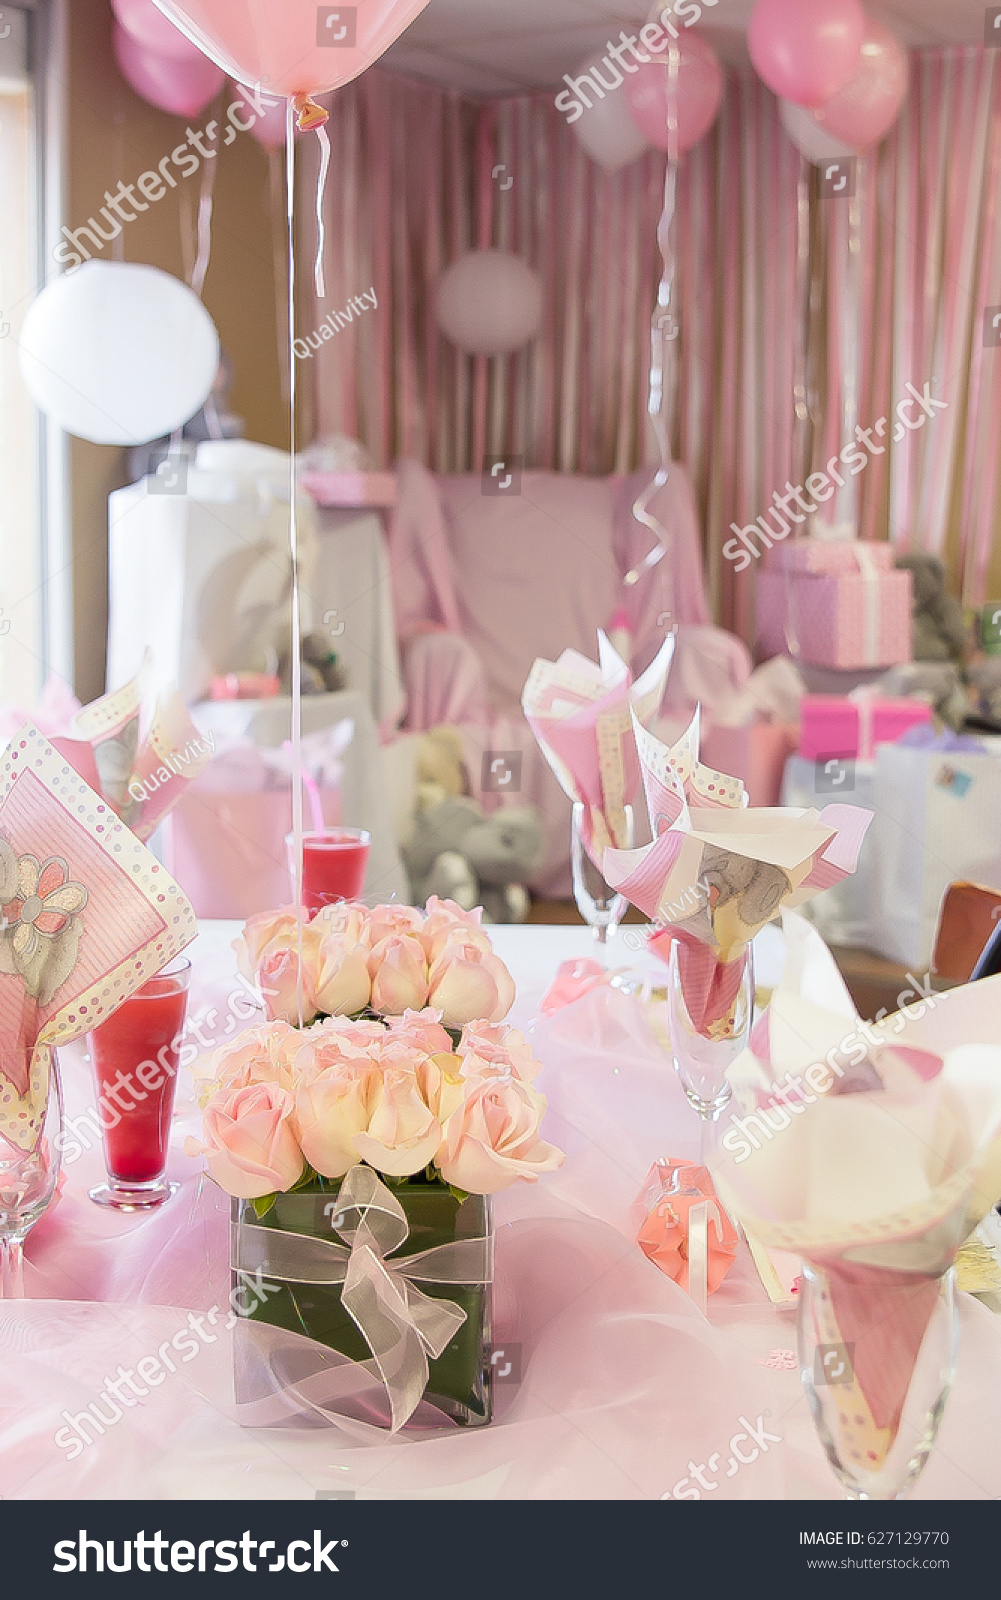 Baby Shower Hen Party Table Decorations Stock Photo (Edit Now ...